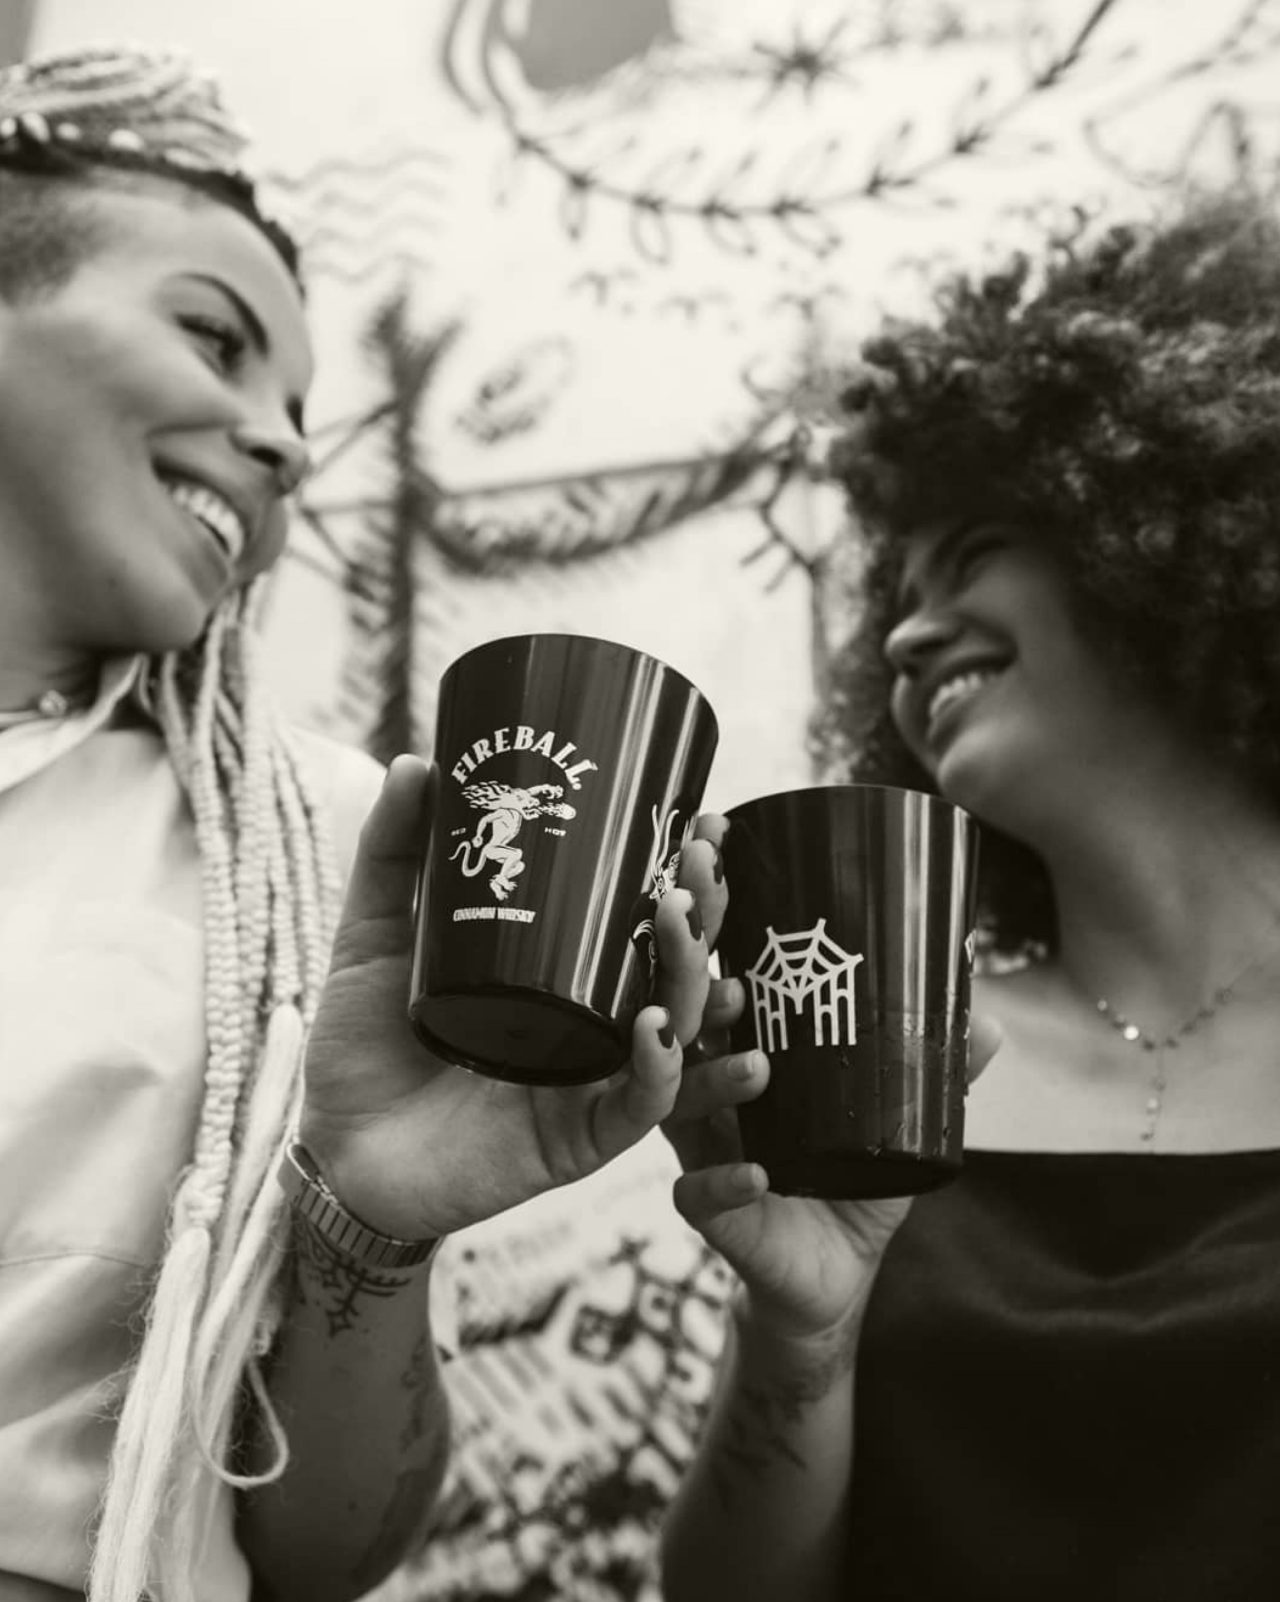 Black and white image of two women smiling and cheersing Fireball cups